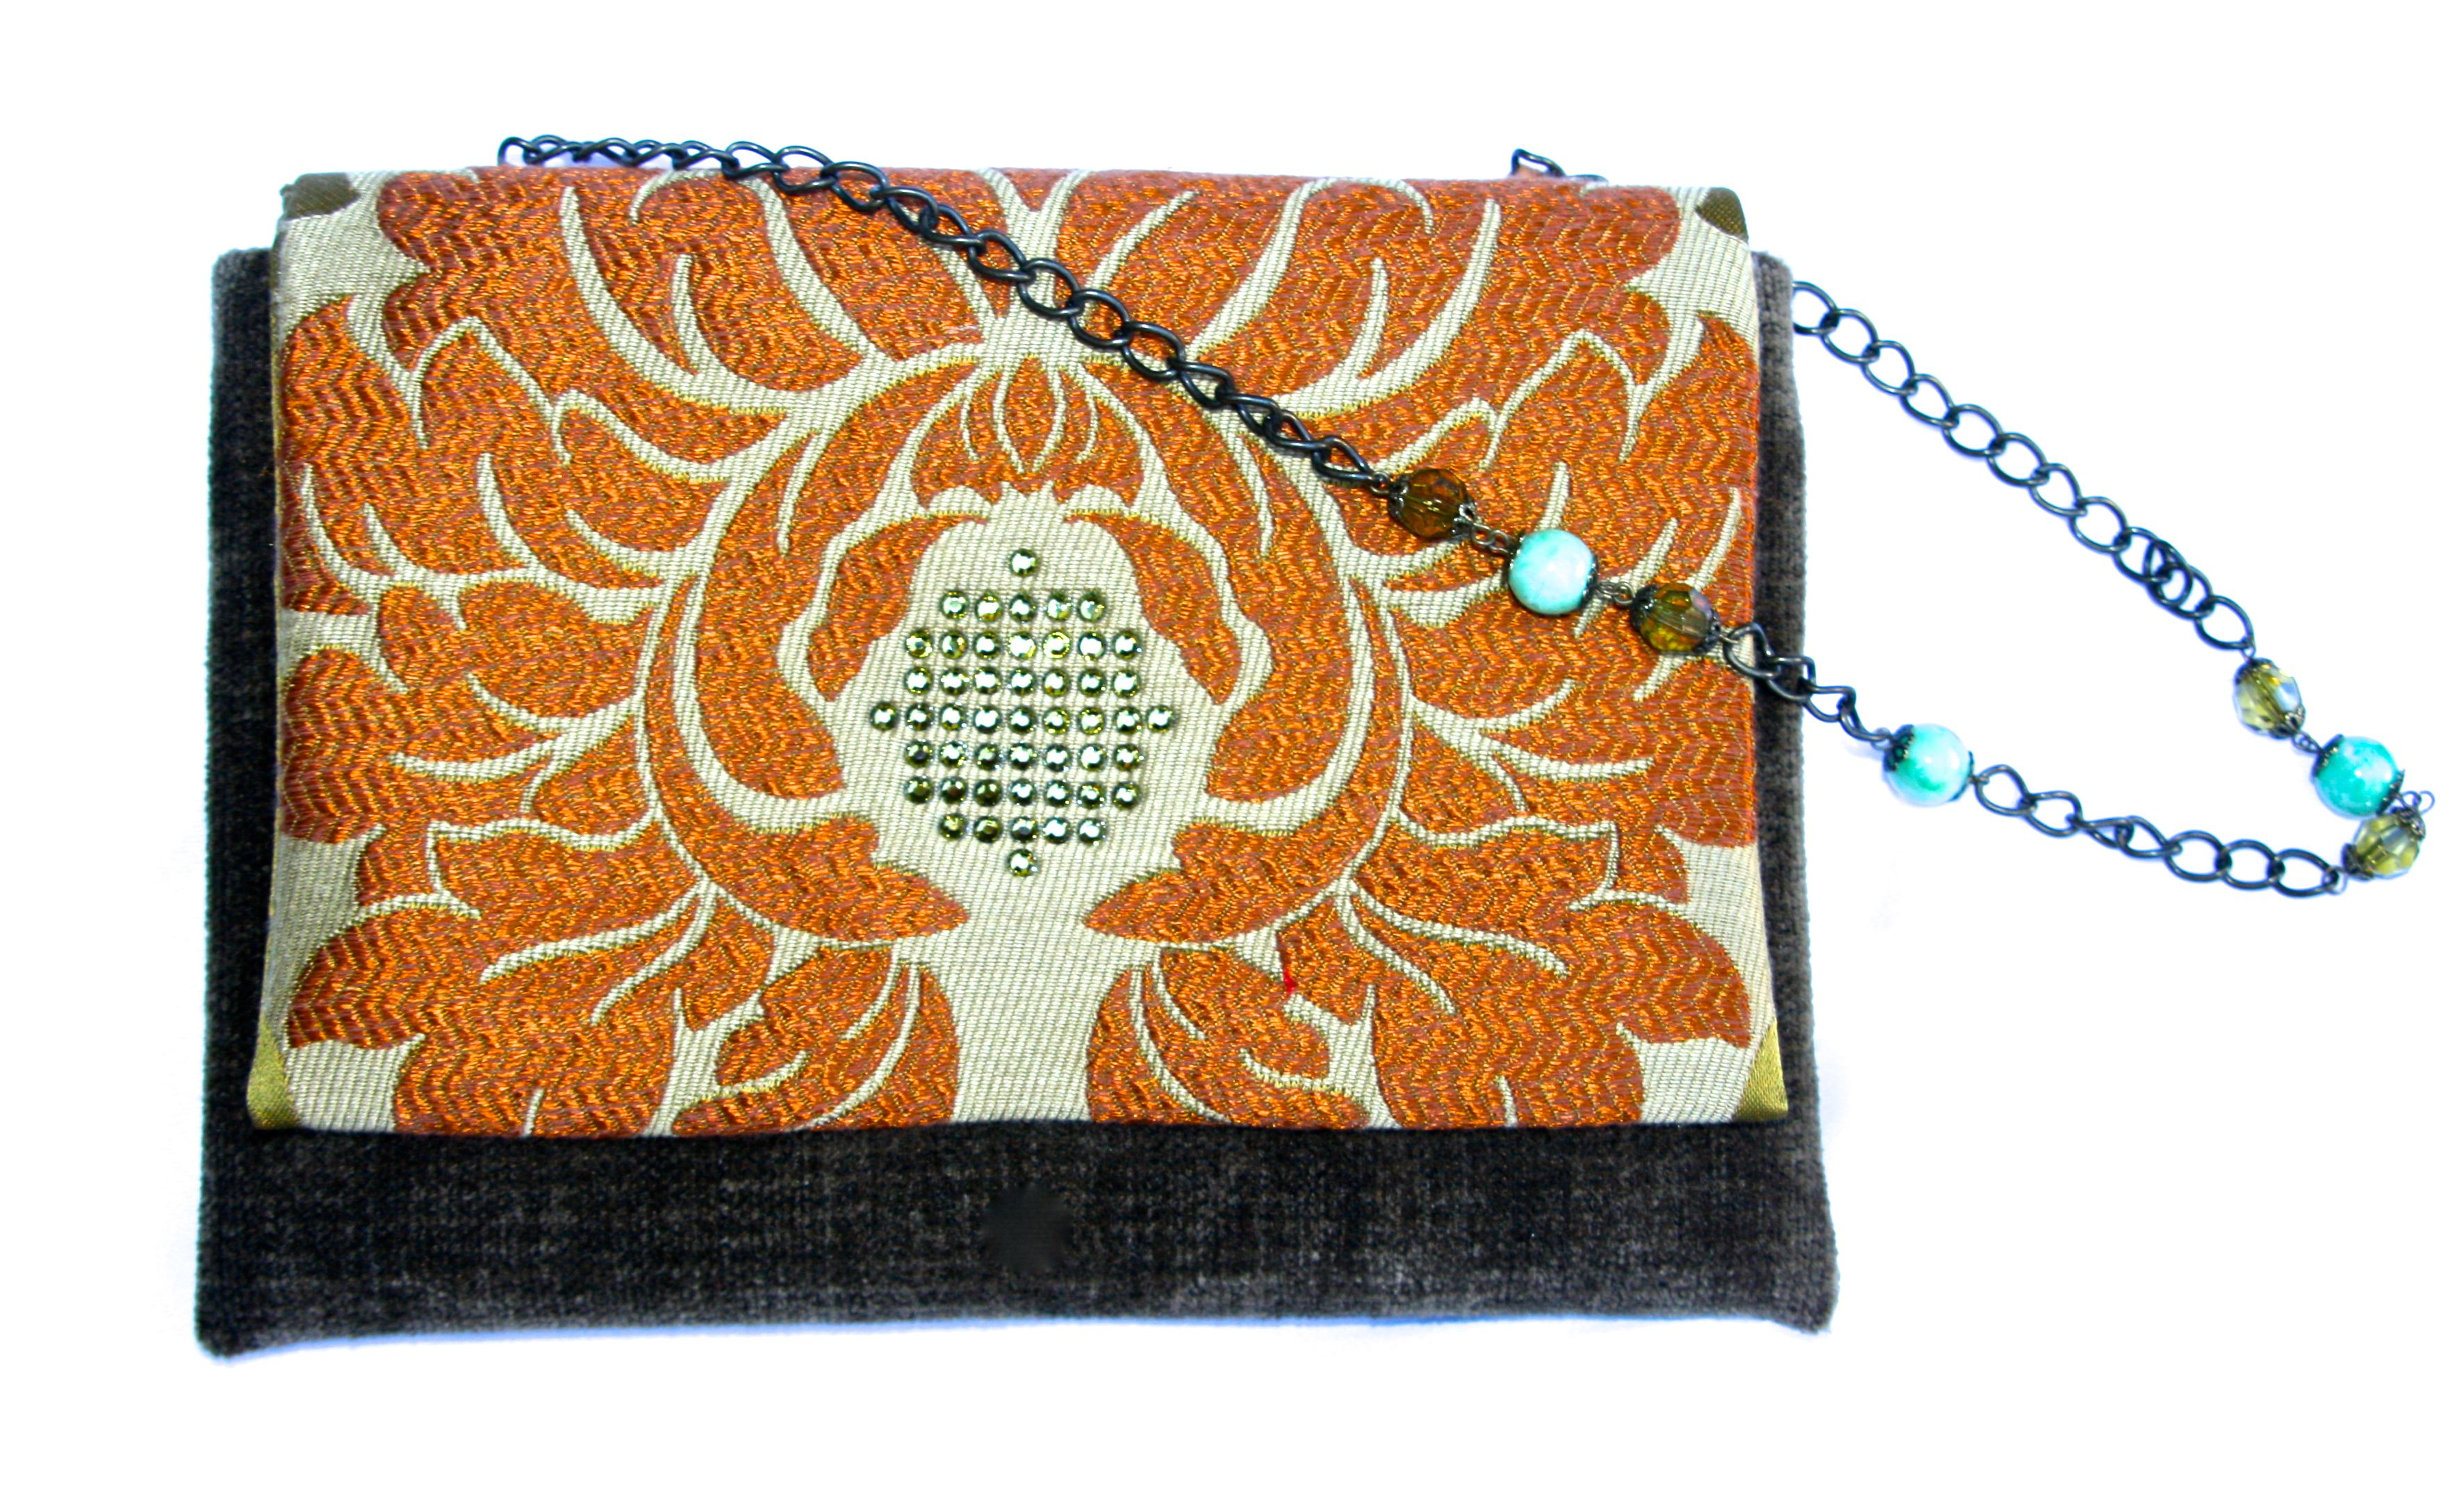 """Zansus small bags - fit in everything and conveniently rest on your wrist while you dance the night away! These make great gifts!  Approx size: 8"""" x 5""""    Price: $50  SALE: No Tax + Free S/H     Email/Paypal: support@zansuspurses.com    We ship USPS Priority within 48 hours of receiving payment."""